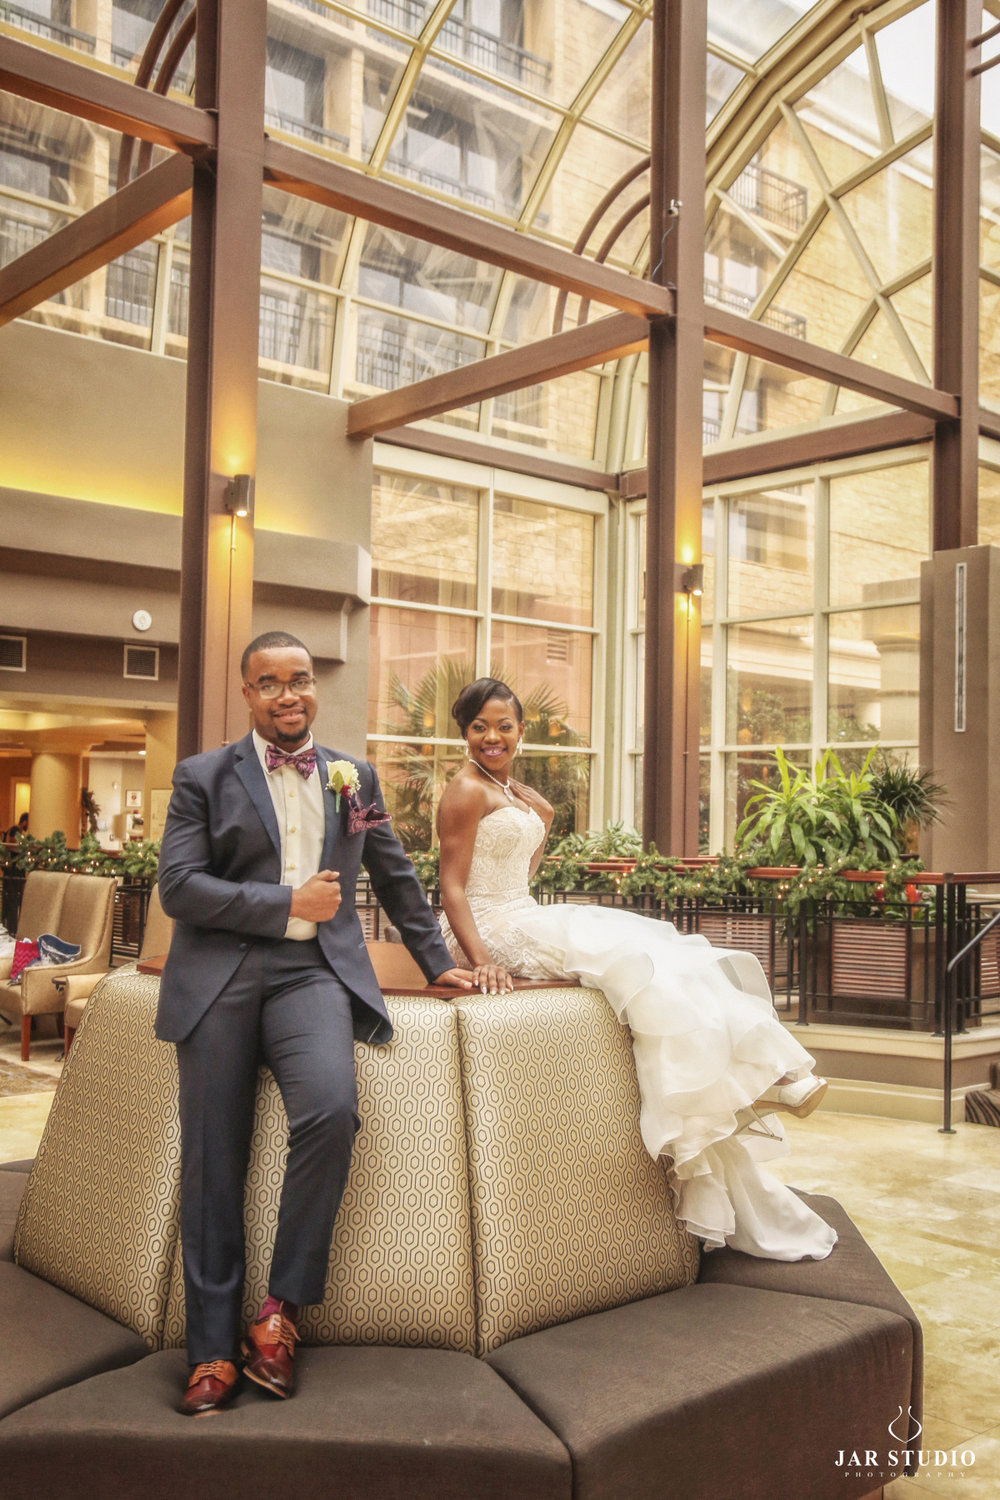 17-sheraton-wedding-photographer-jarstudio.JPG